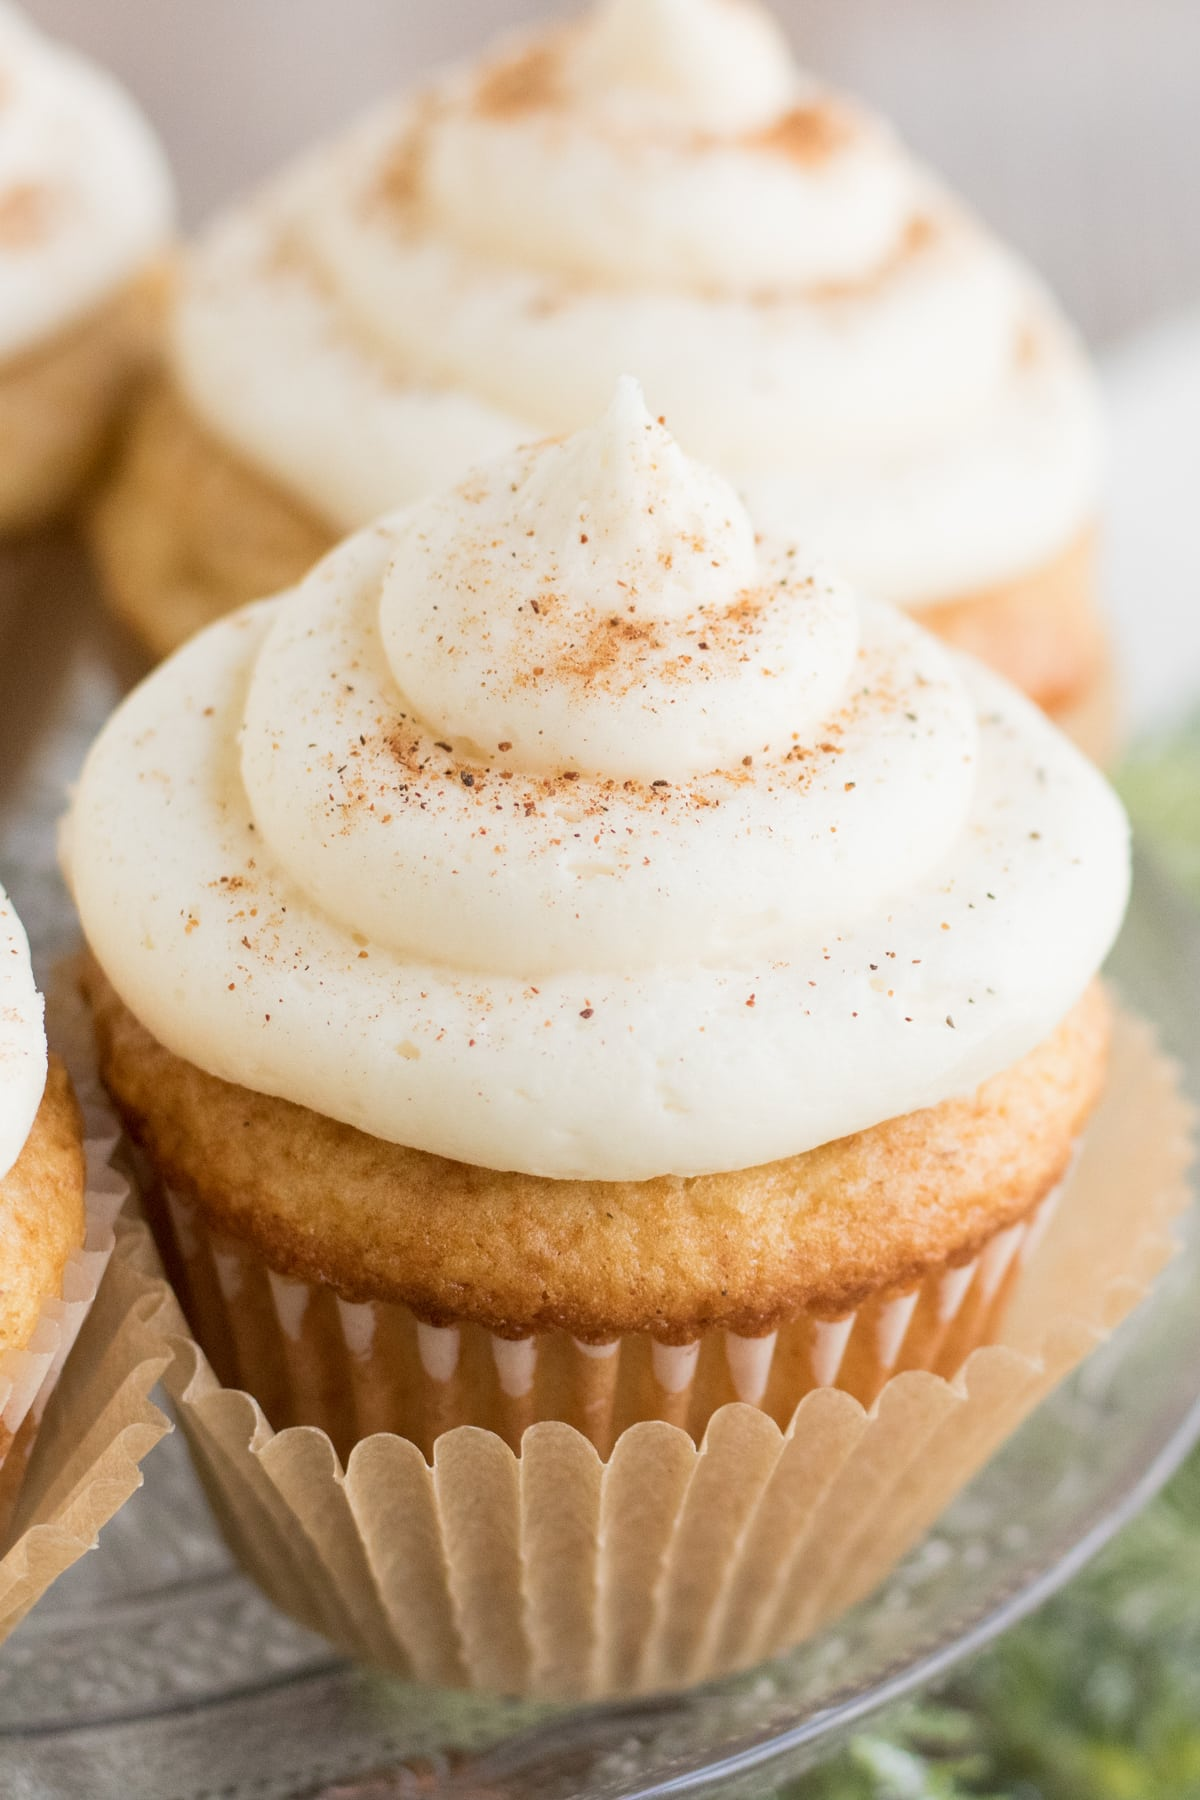 Eggnog cupcakes on a glass plate